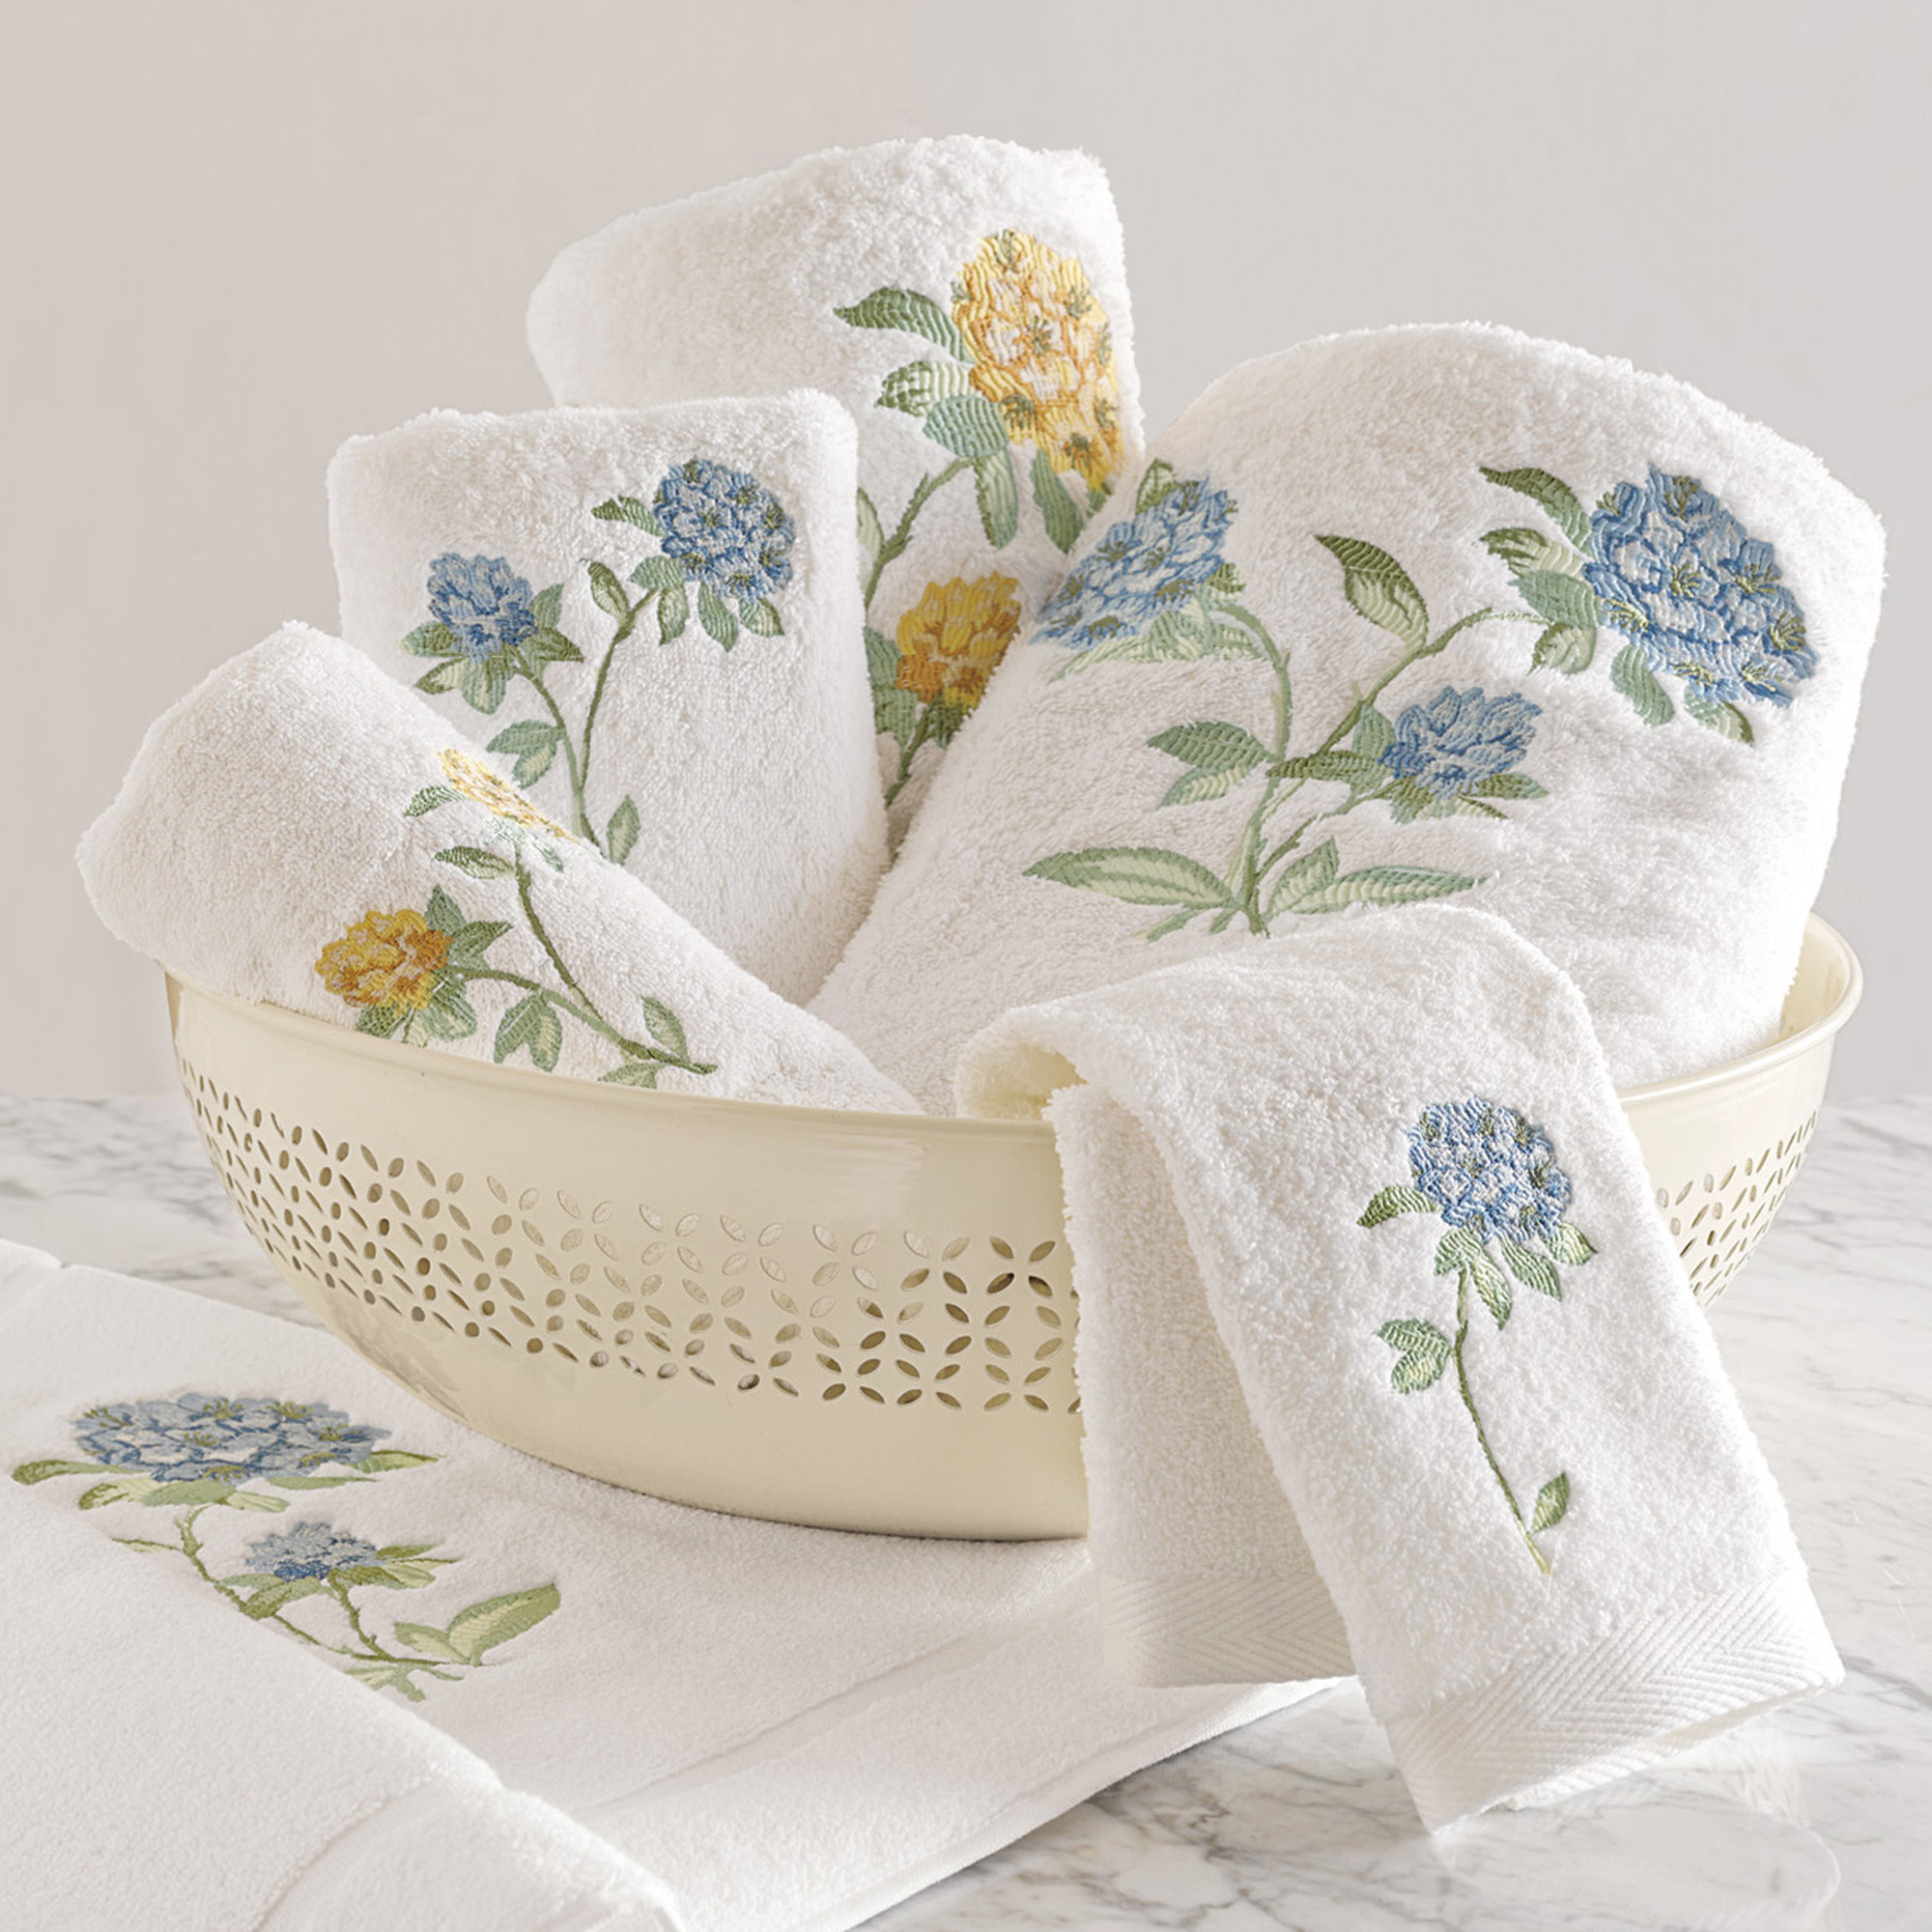 Woodside Floral Embroidered Towels